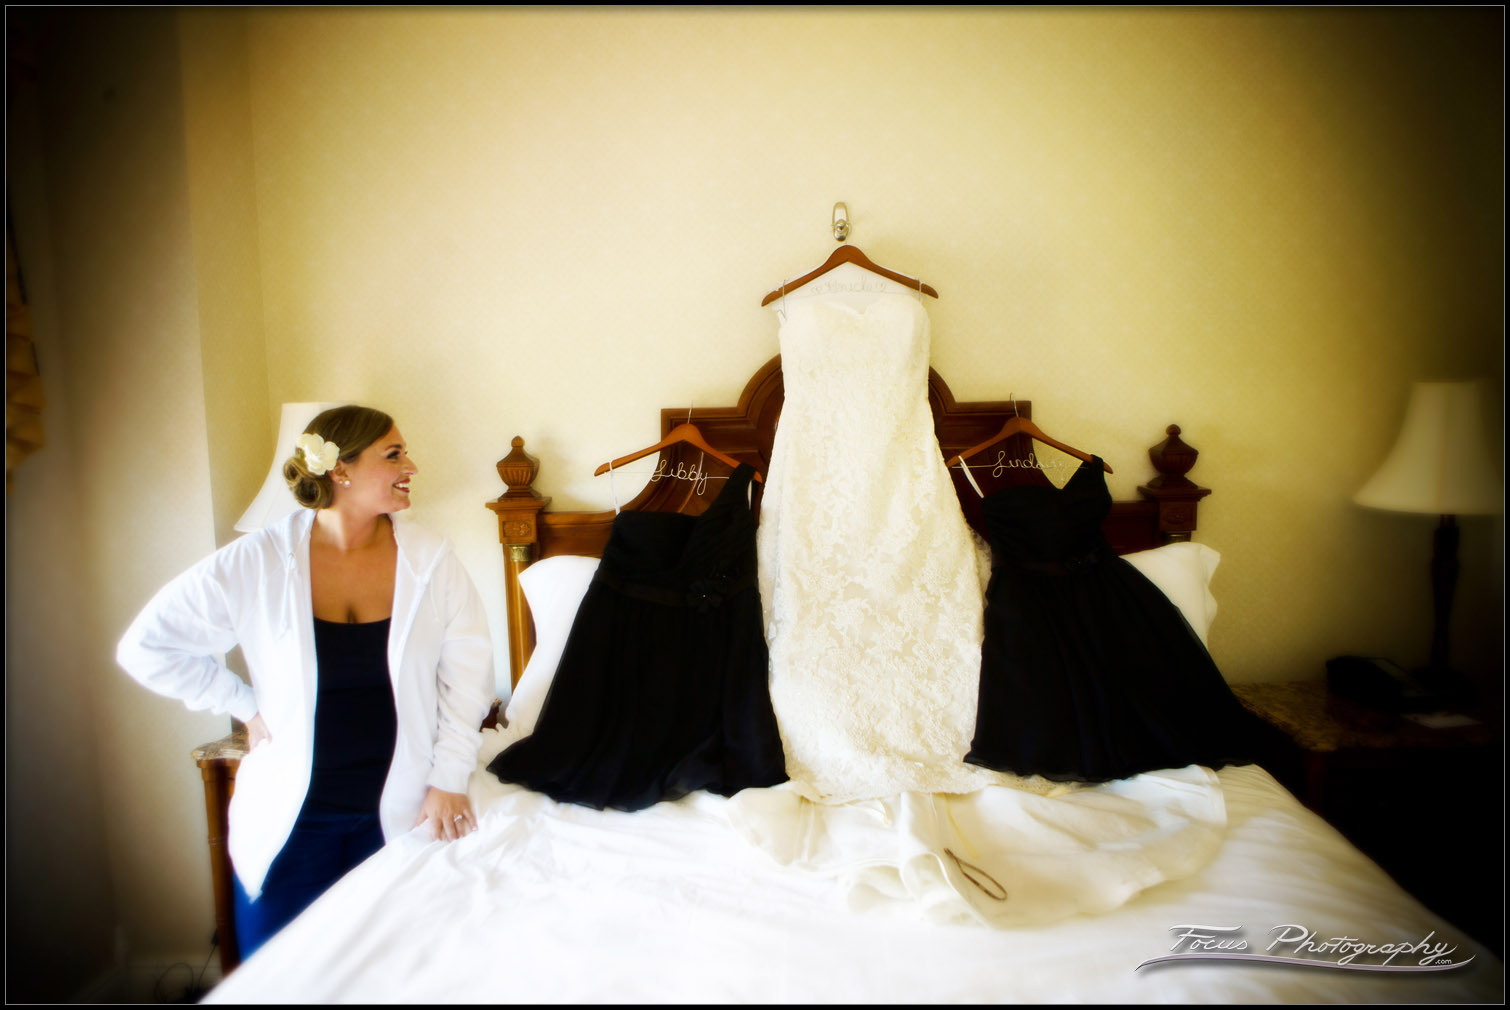 Bride admiring her dress choices.